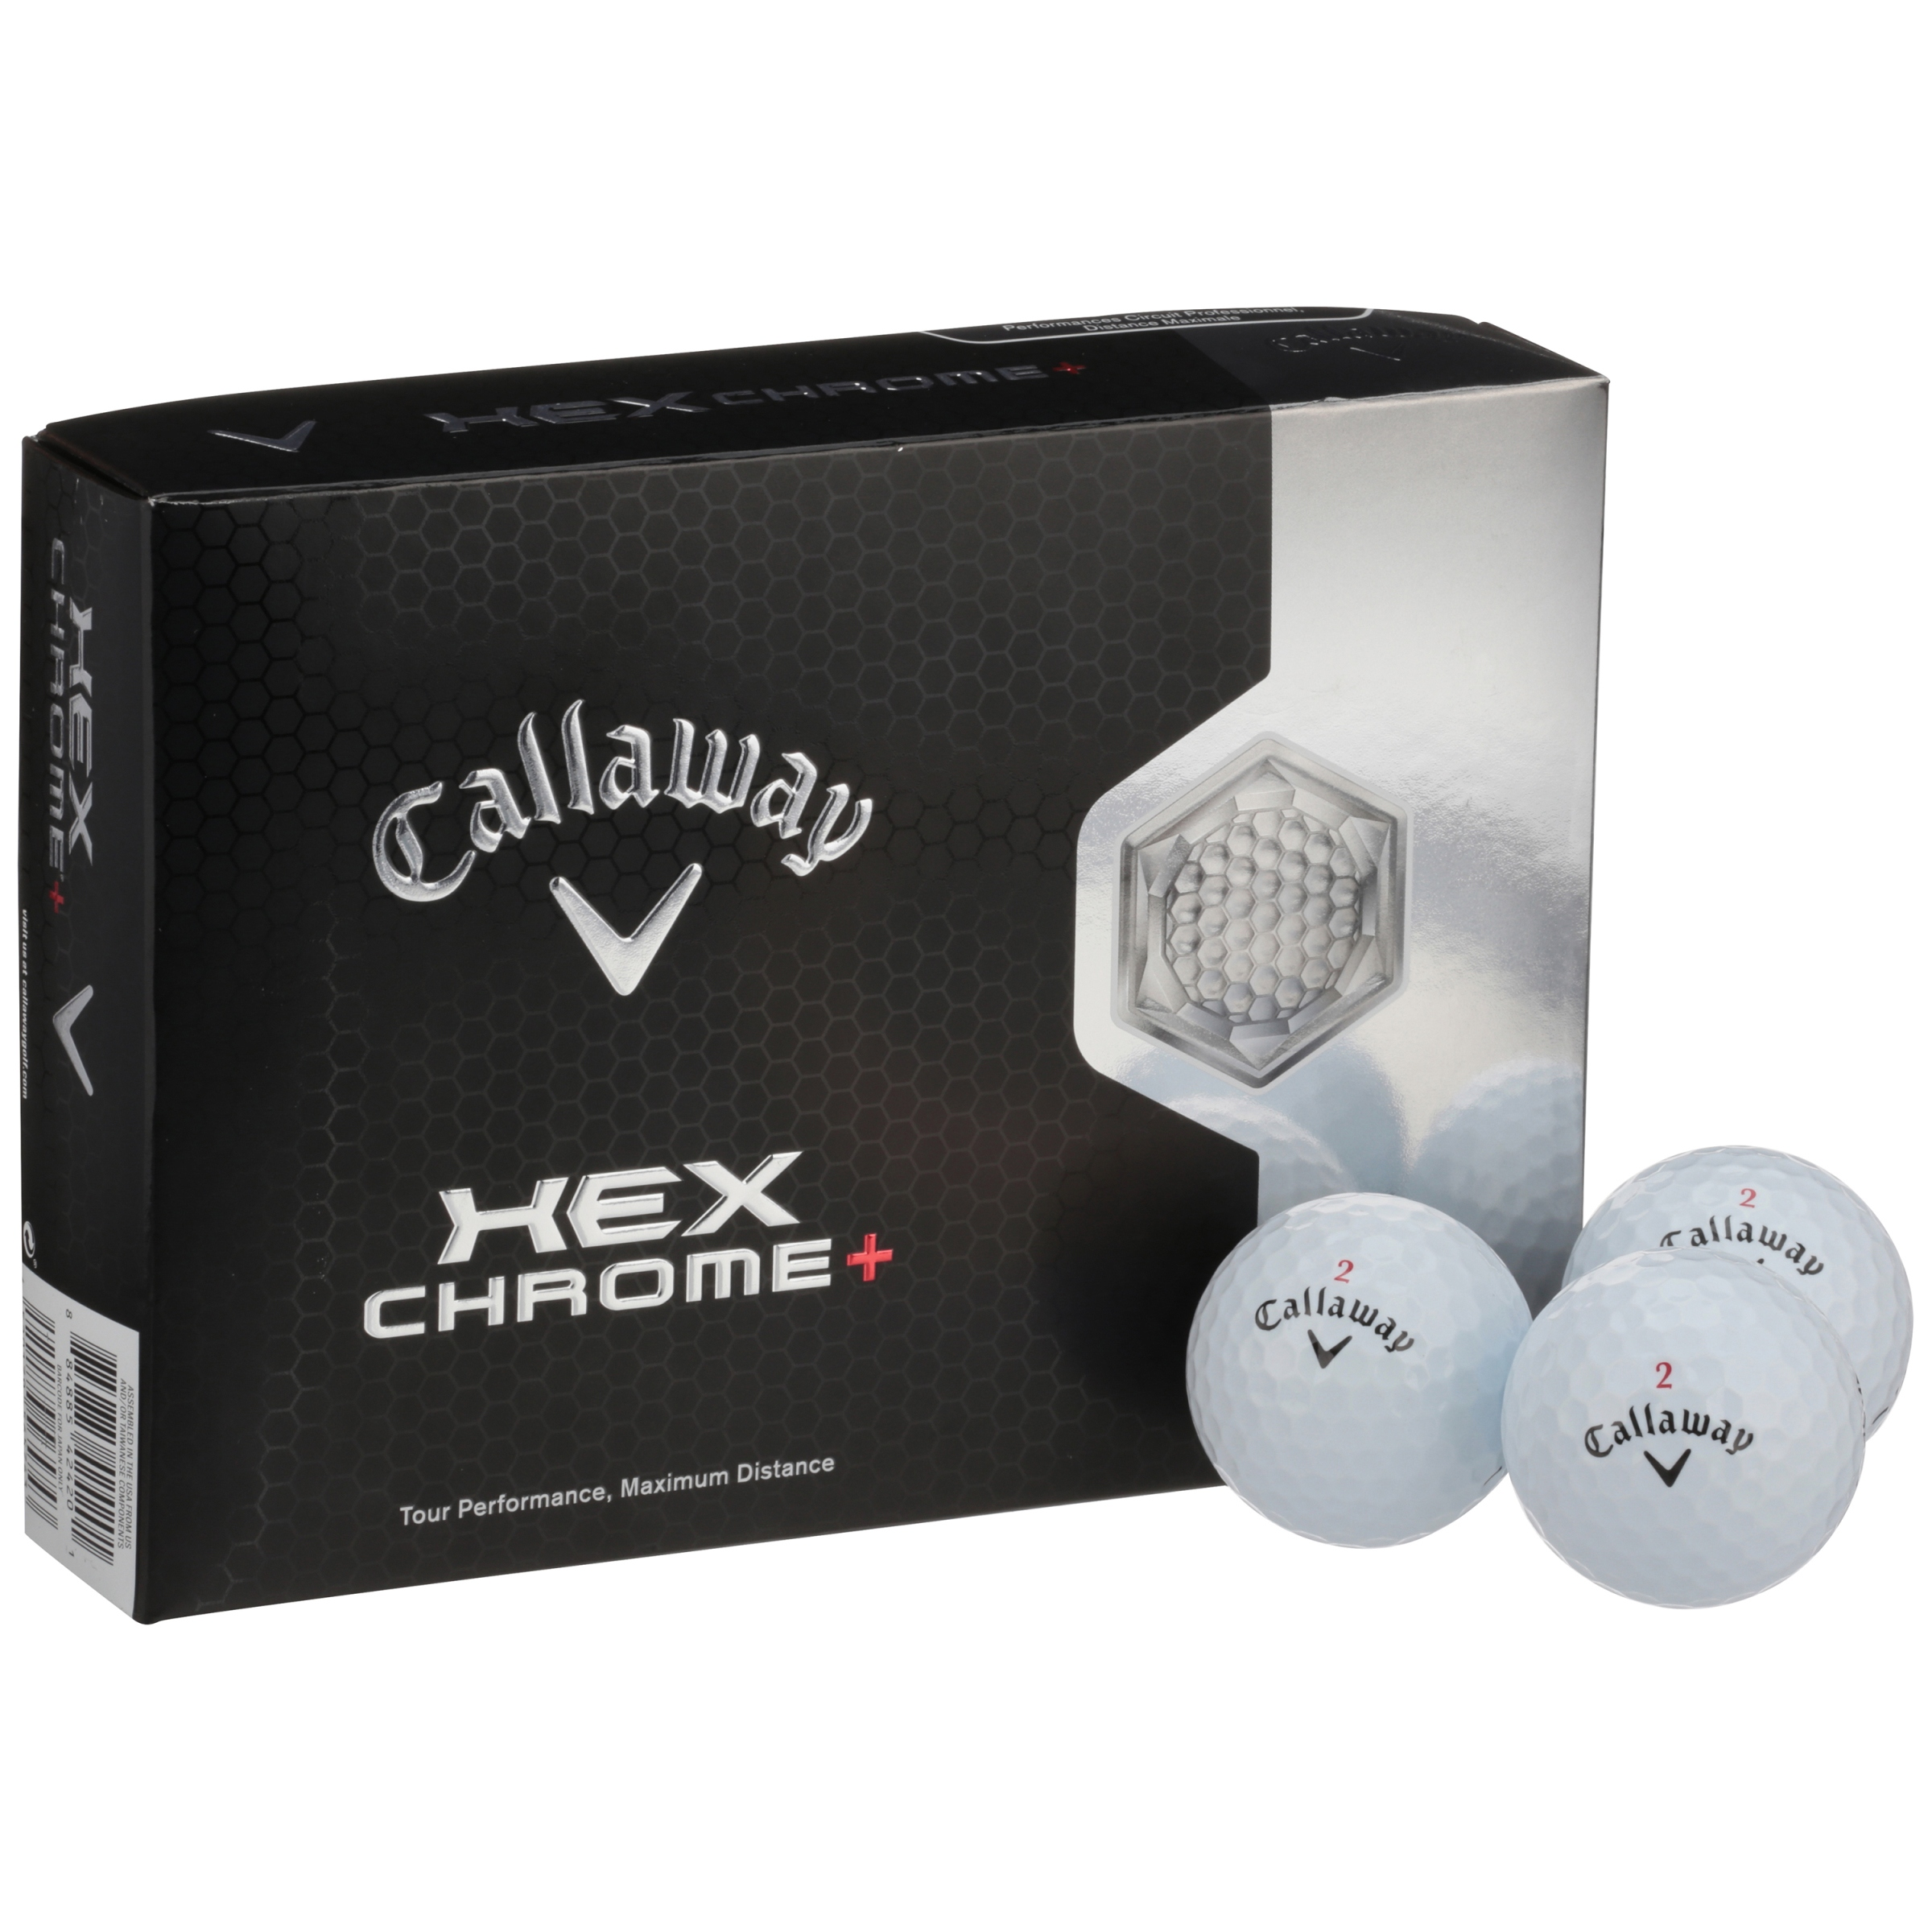 Callaway Hex Chrome Golf Balls 12 ct Box by Callaway Golf Company - Do Not Use